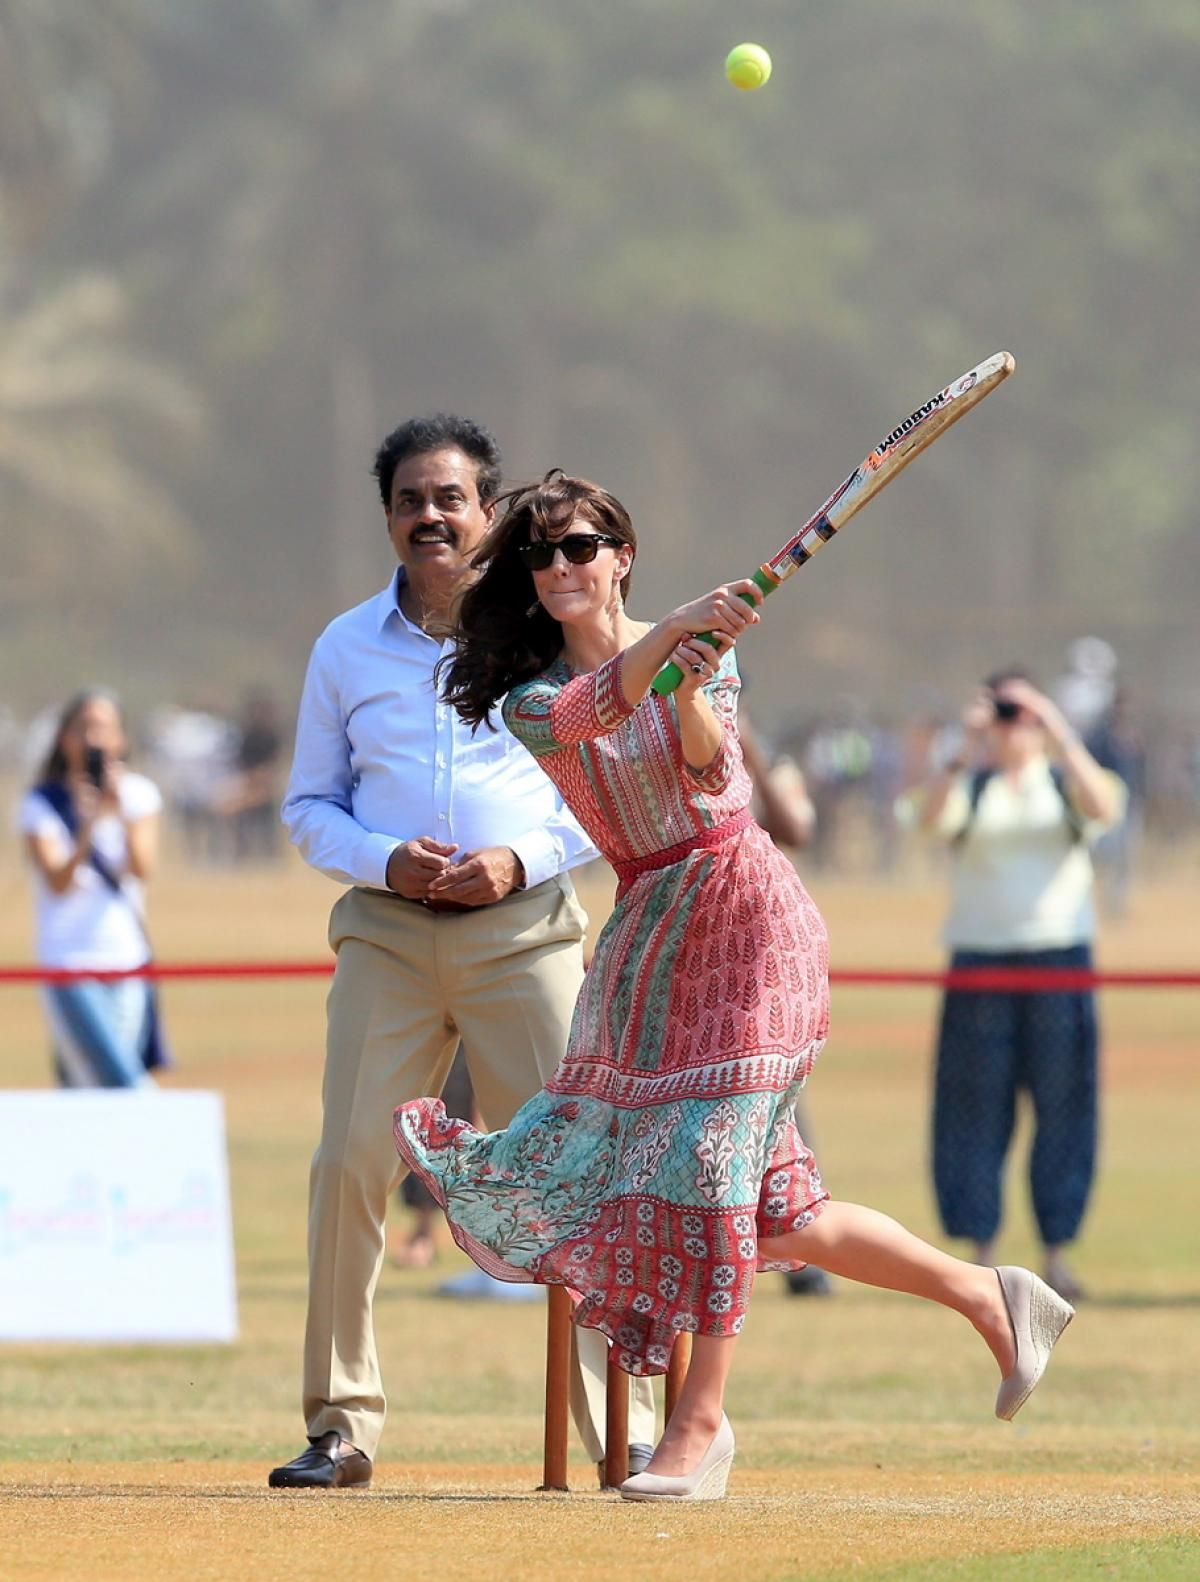 Kate Middleton took to the field to show off her impressive swing while playing cricket in heels on April 10, 2016.